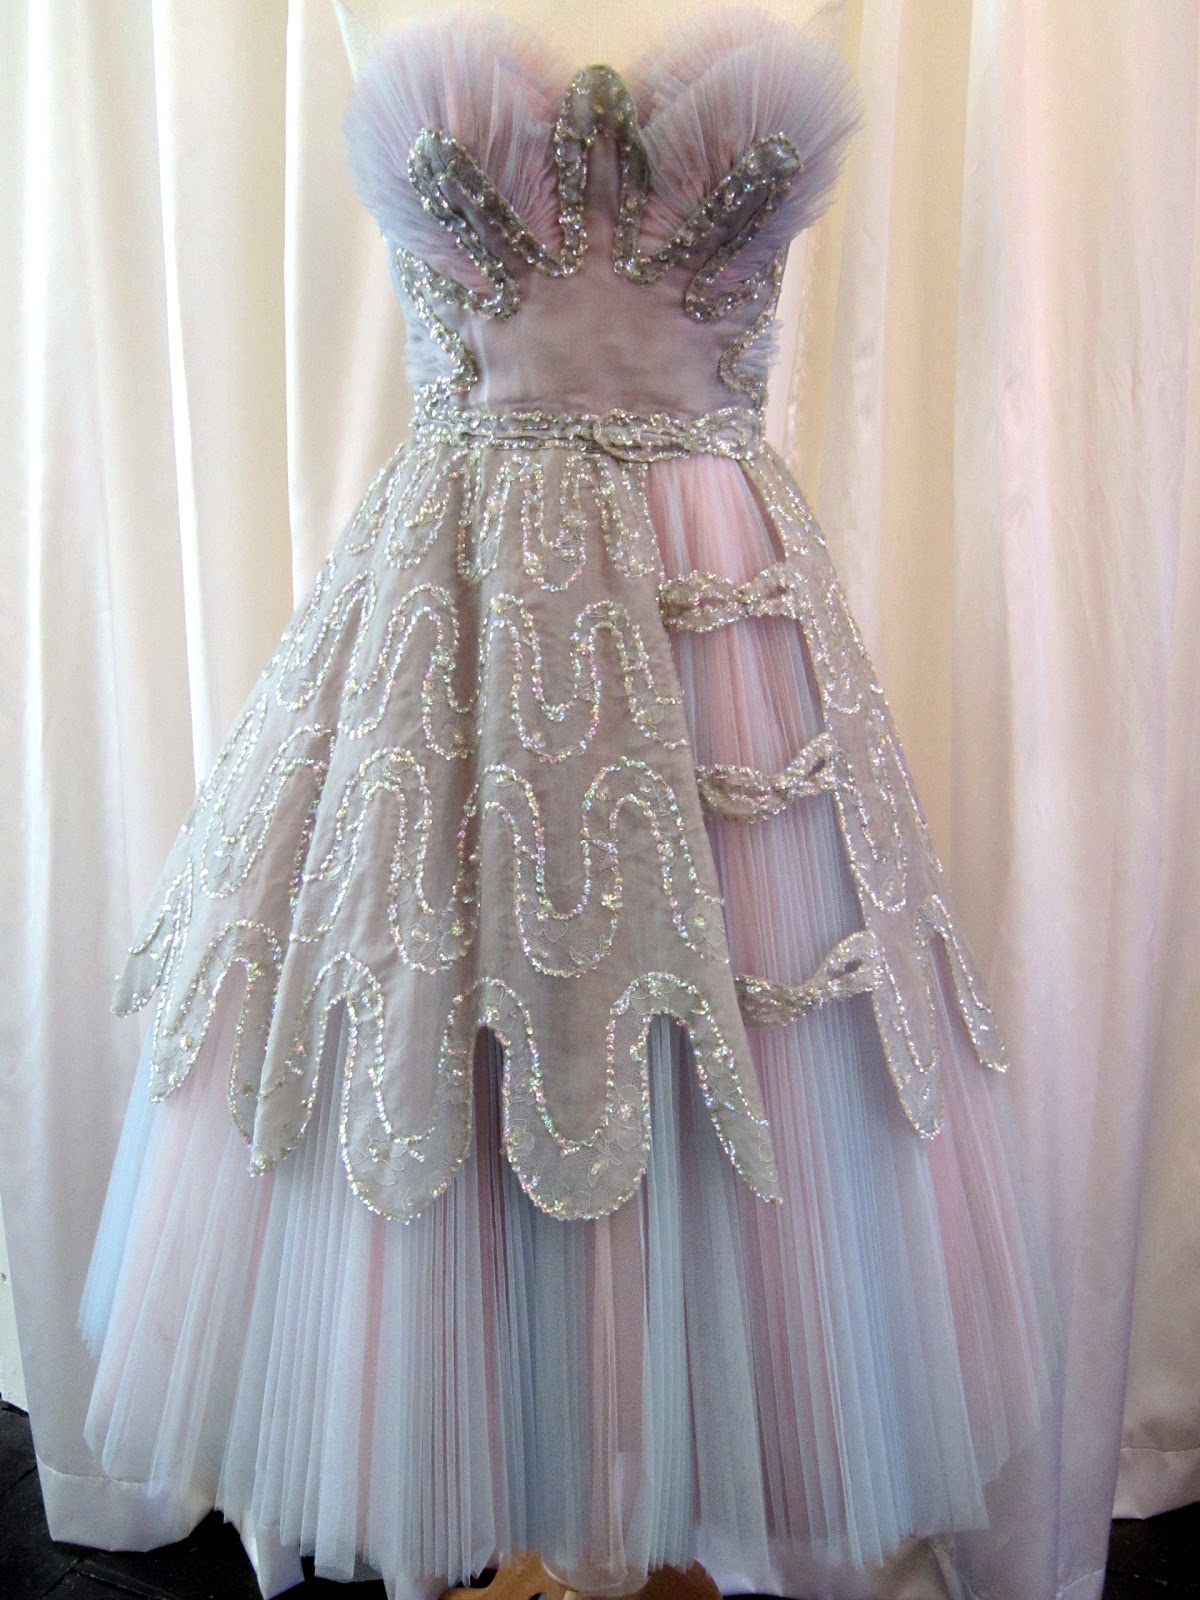 1950s Couture pink & blue lace